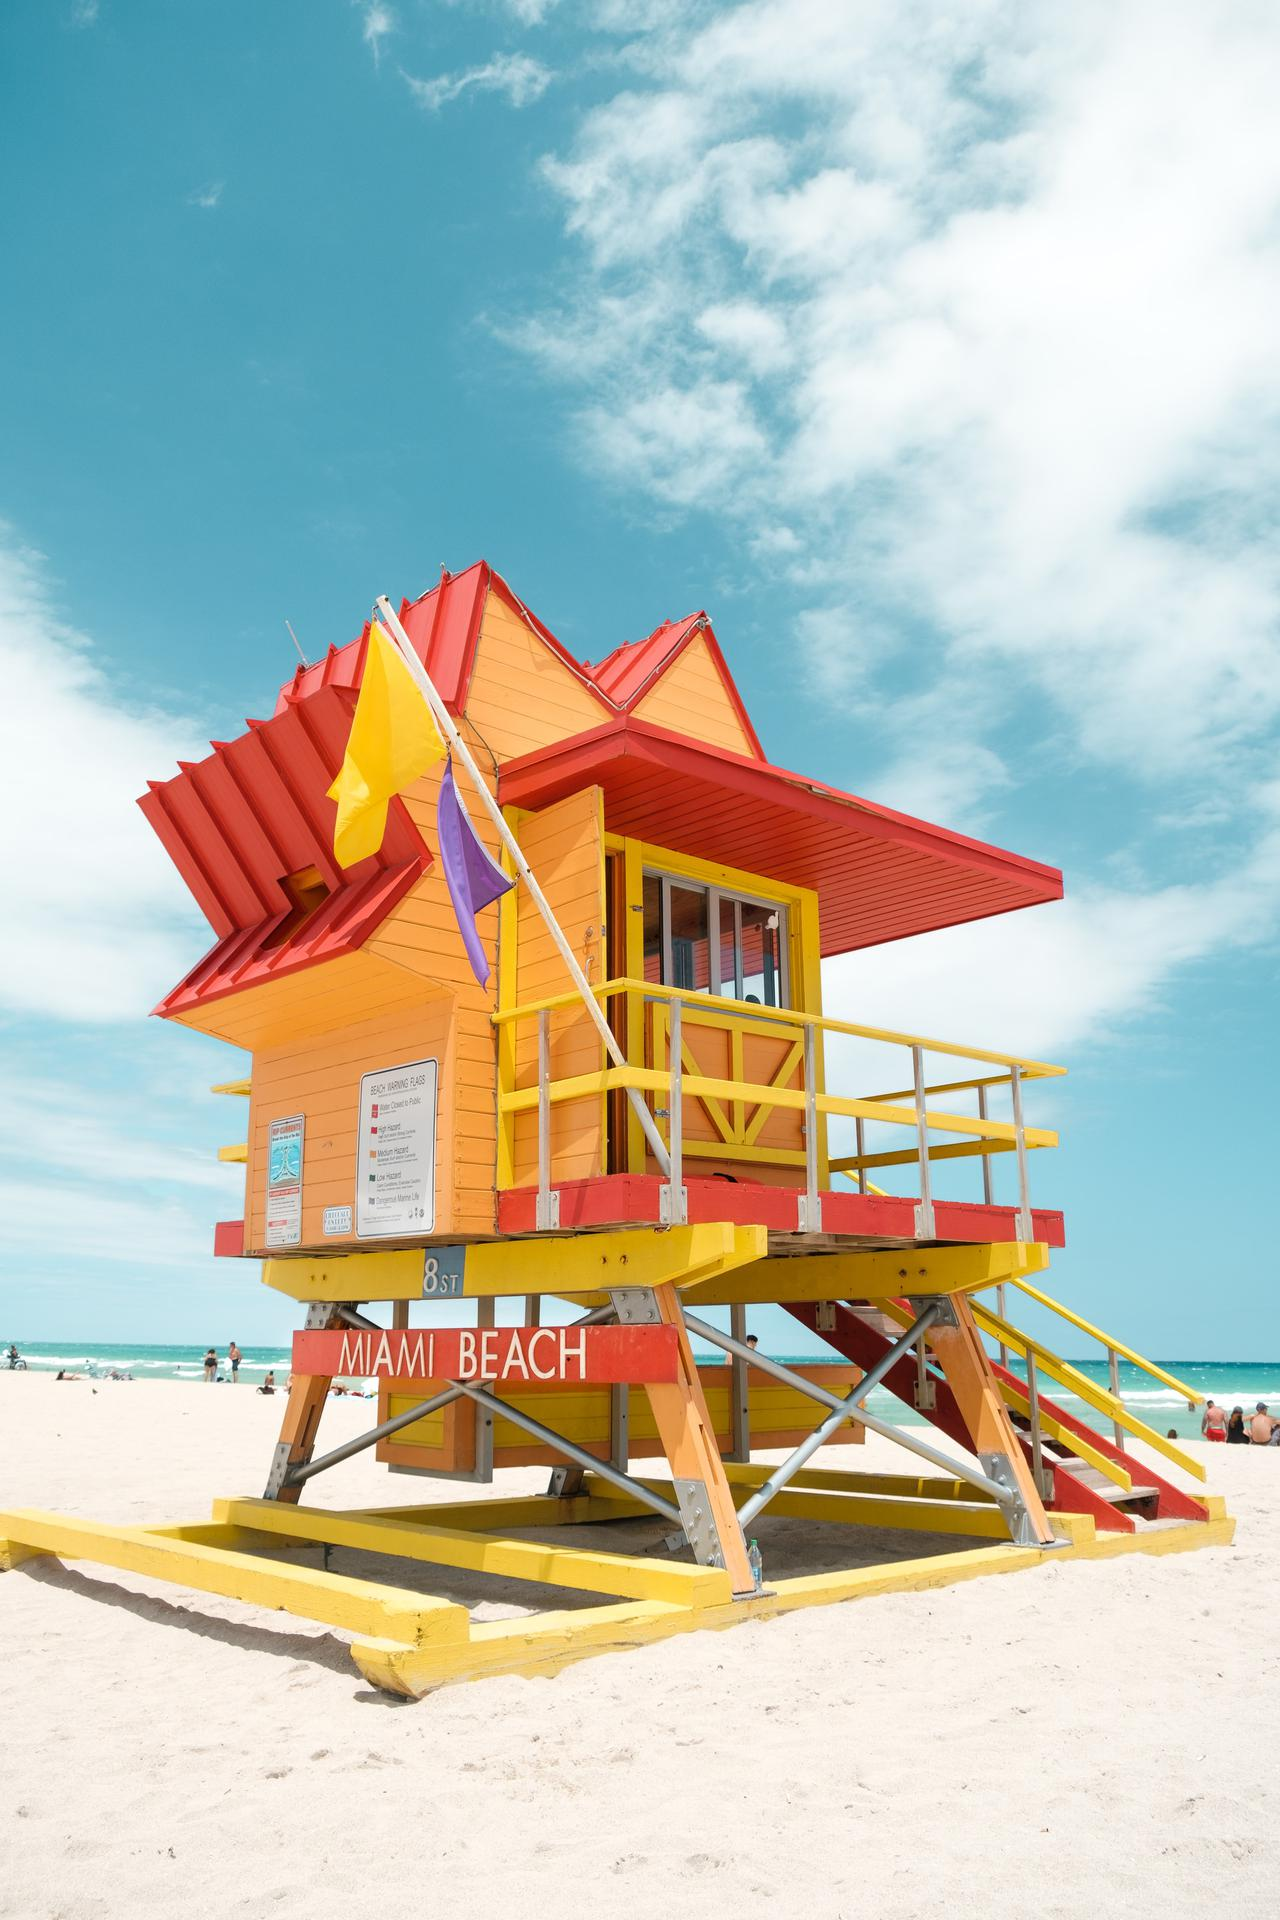 For exteriors that need to withstand the sun and salt of Florida, learn how to use enamel paint.